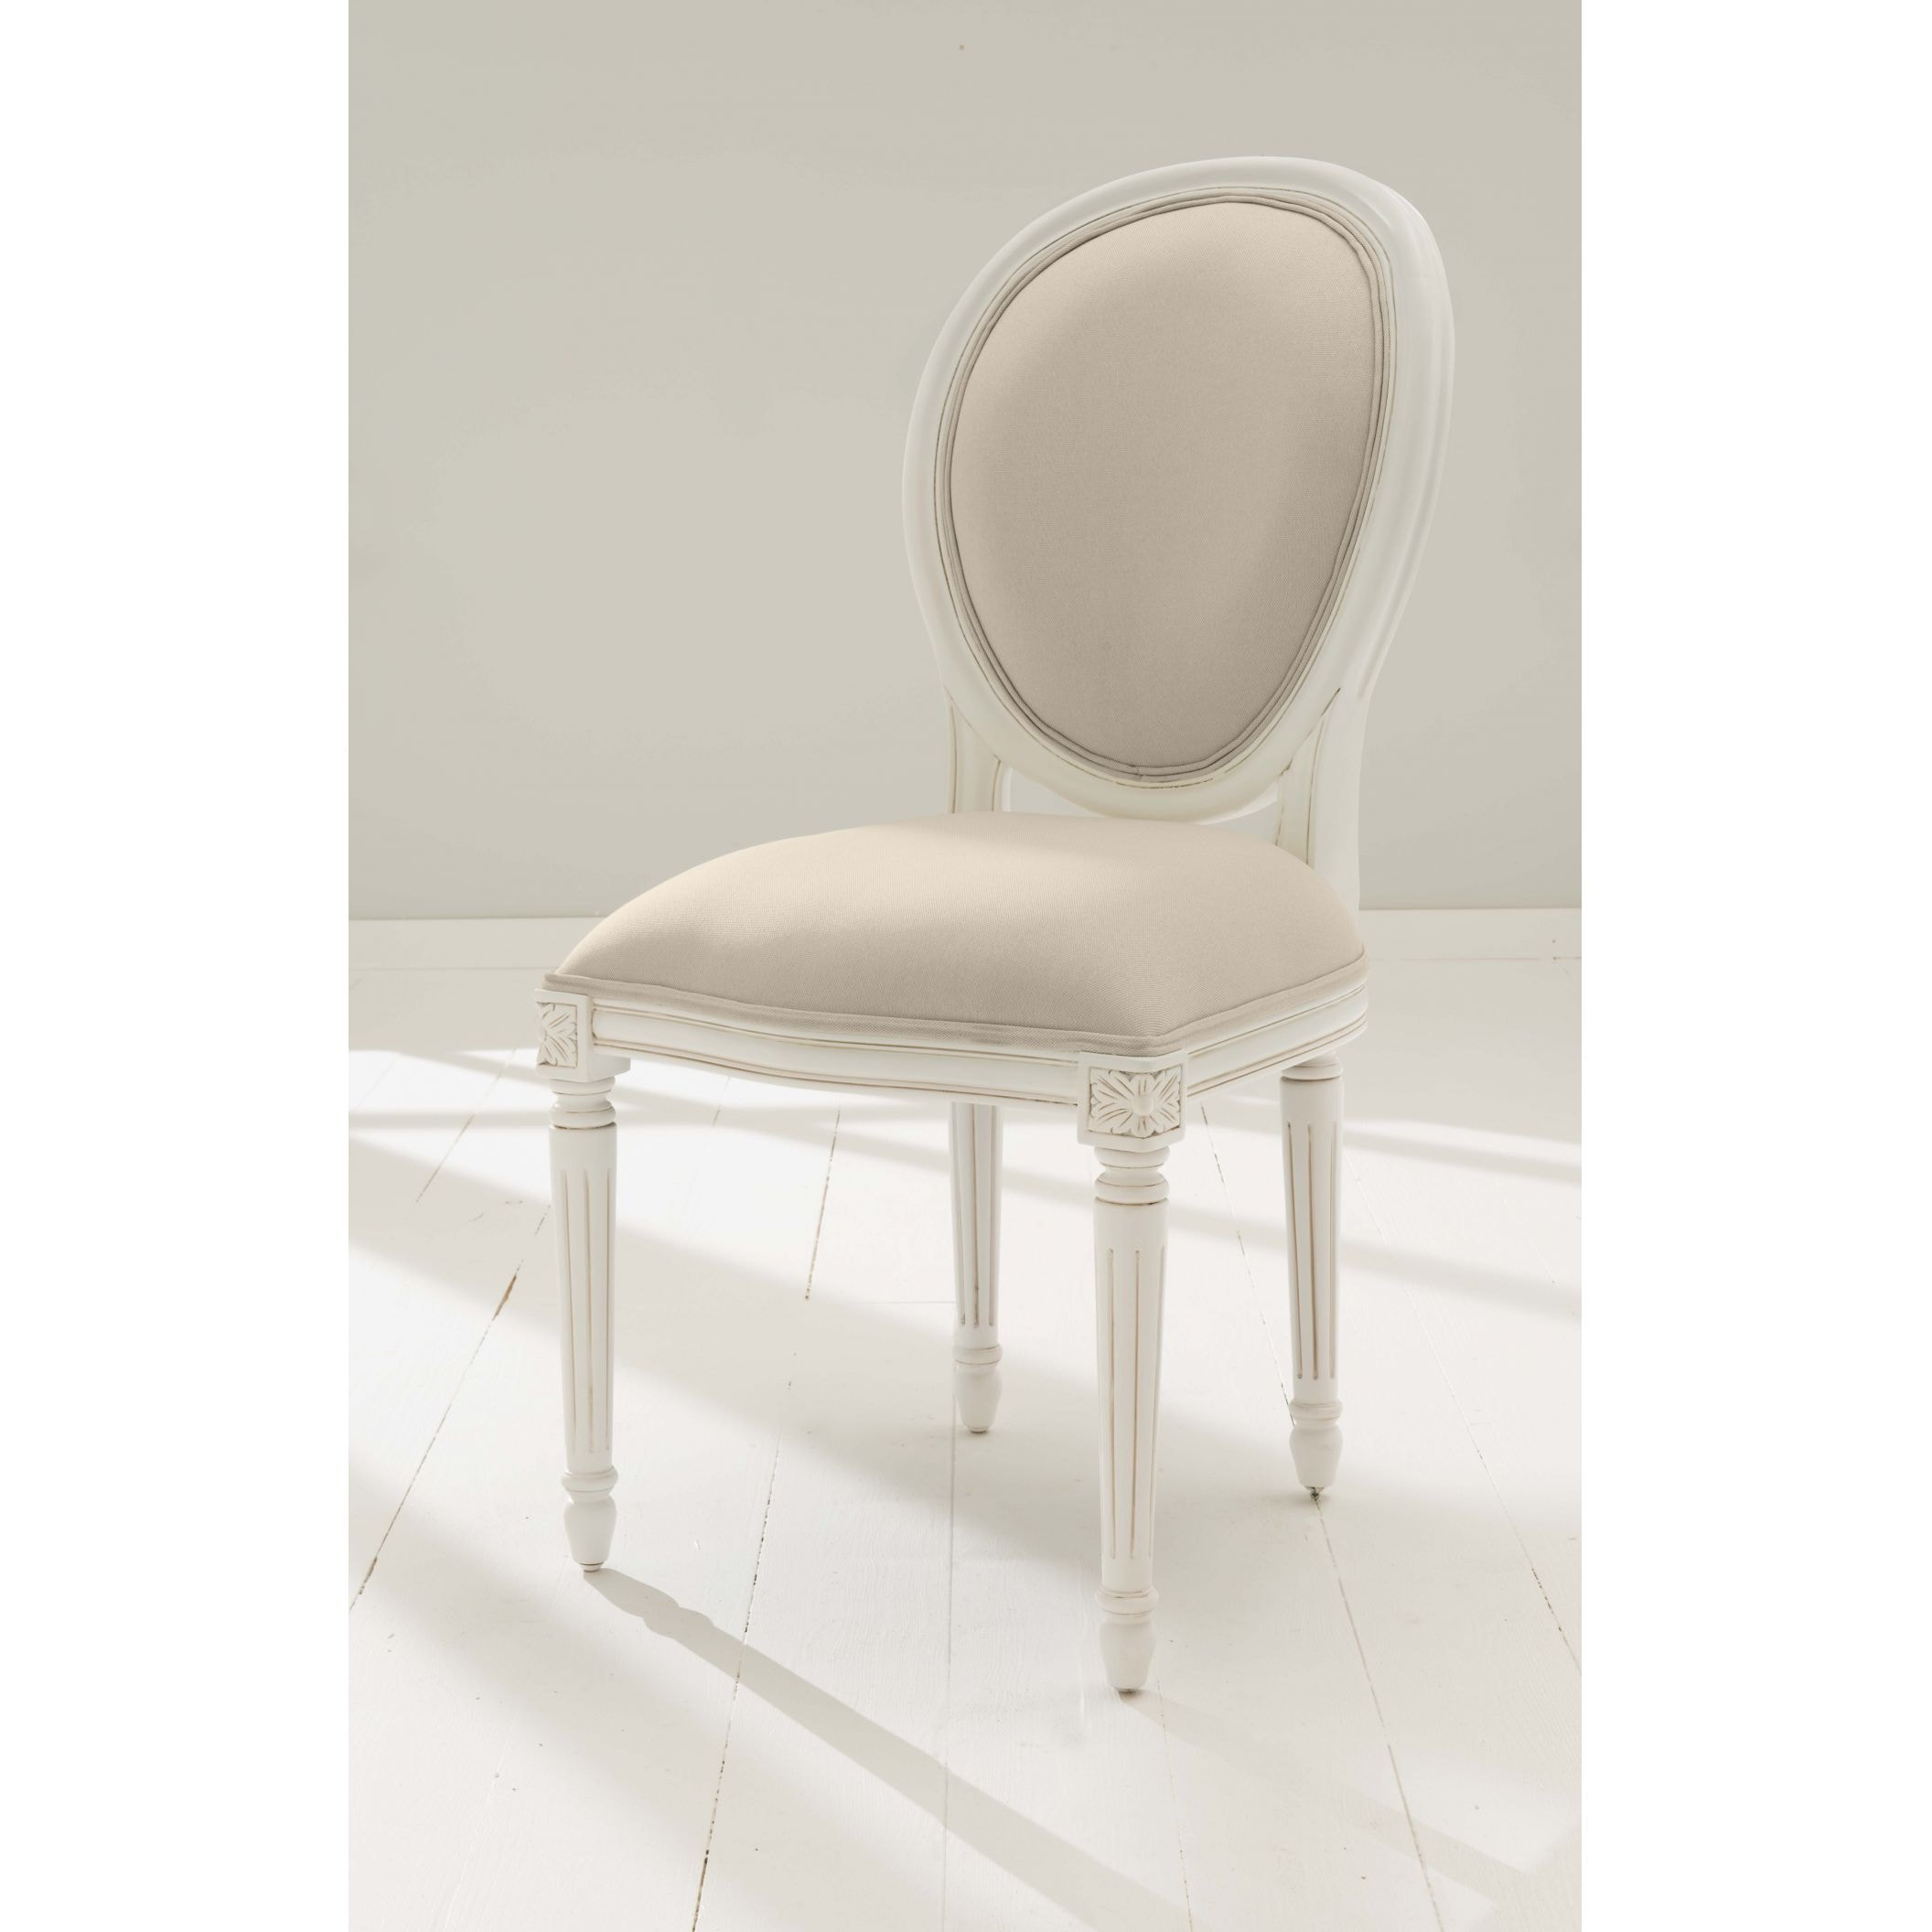 Merveilleux Antique French Style Chair